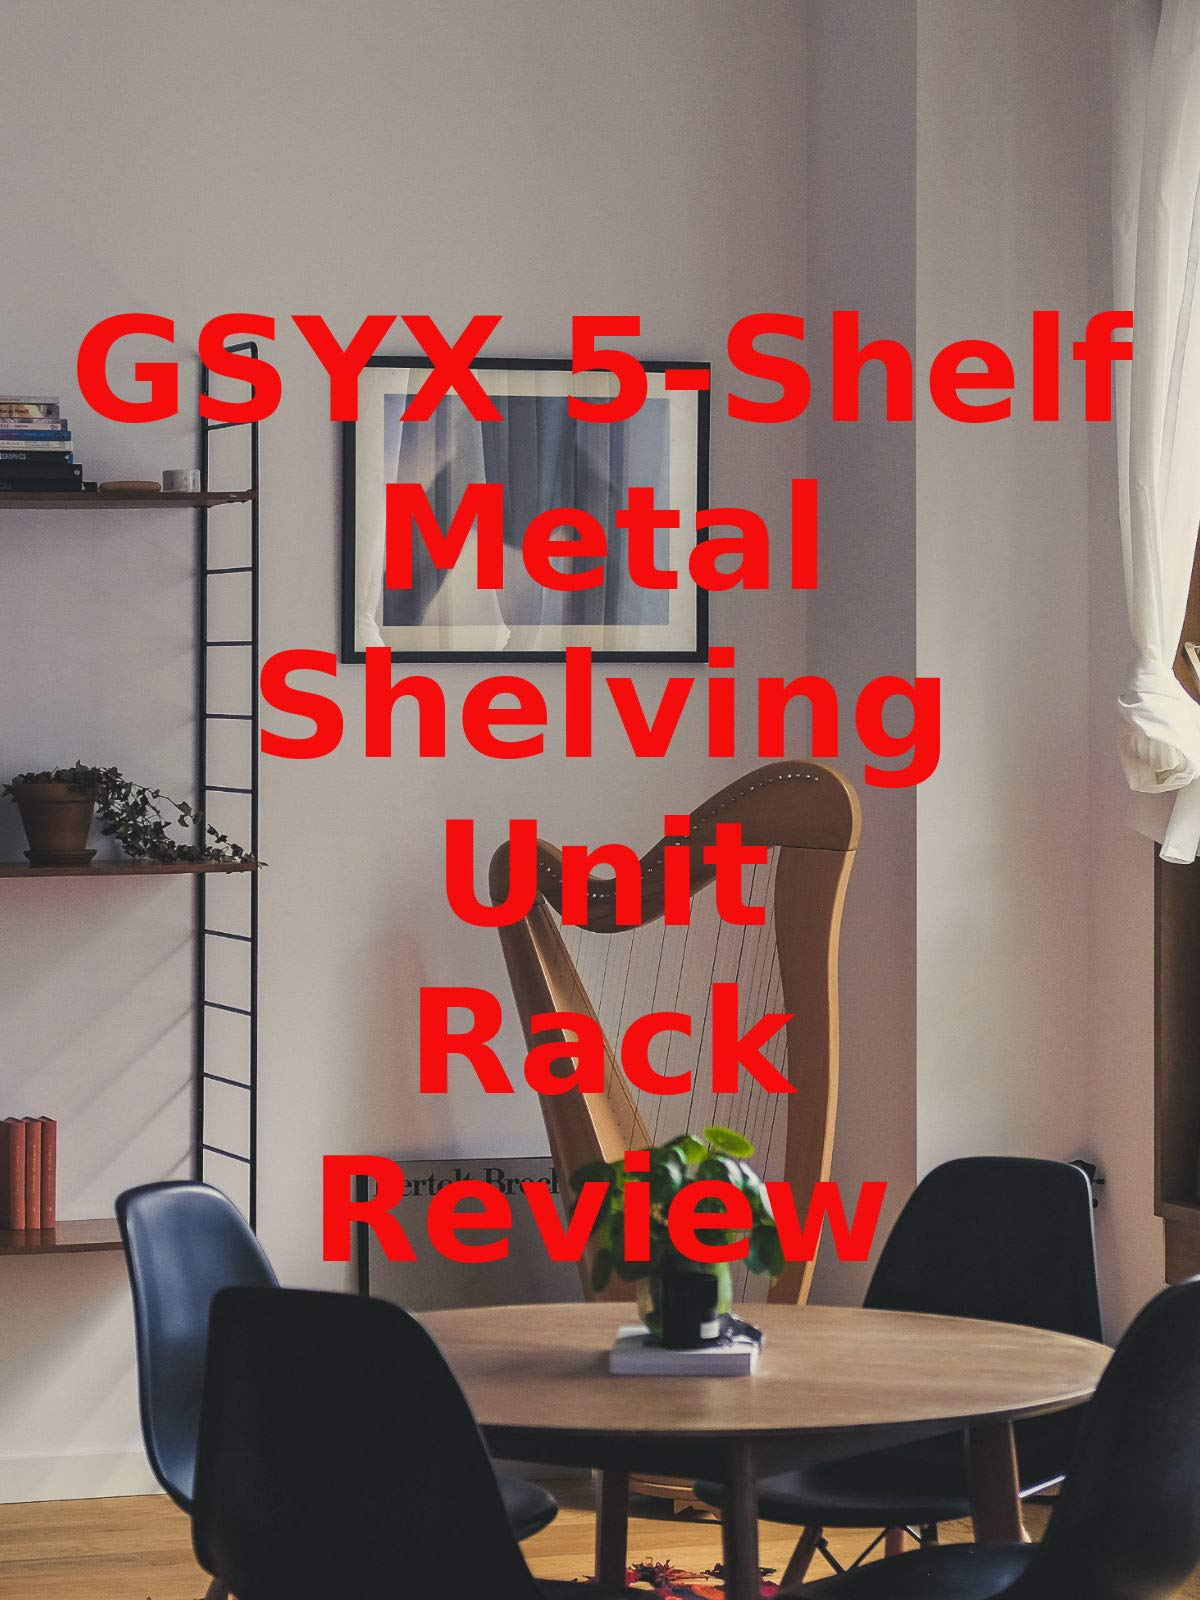 Review: GSYX 5-Shelf Metal Shelving Unit Rack Review on Amazon Prime Video UK